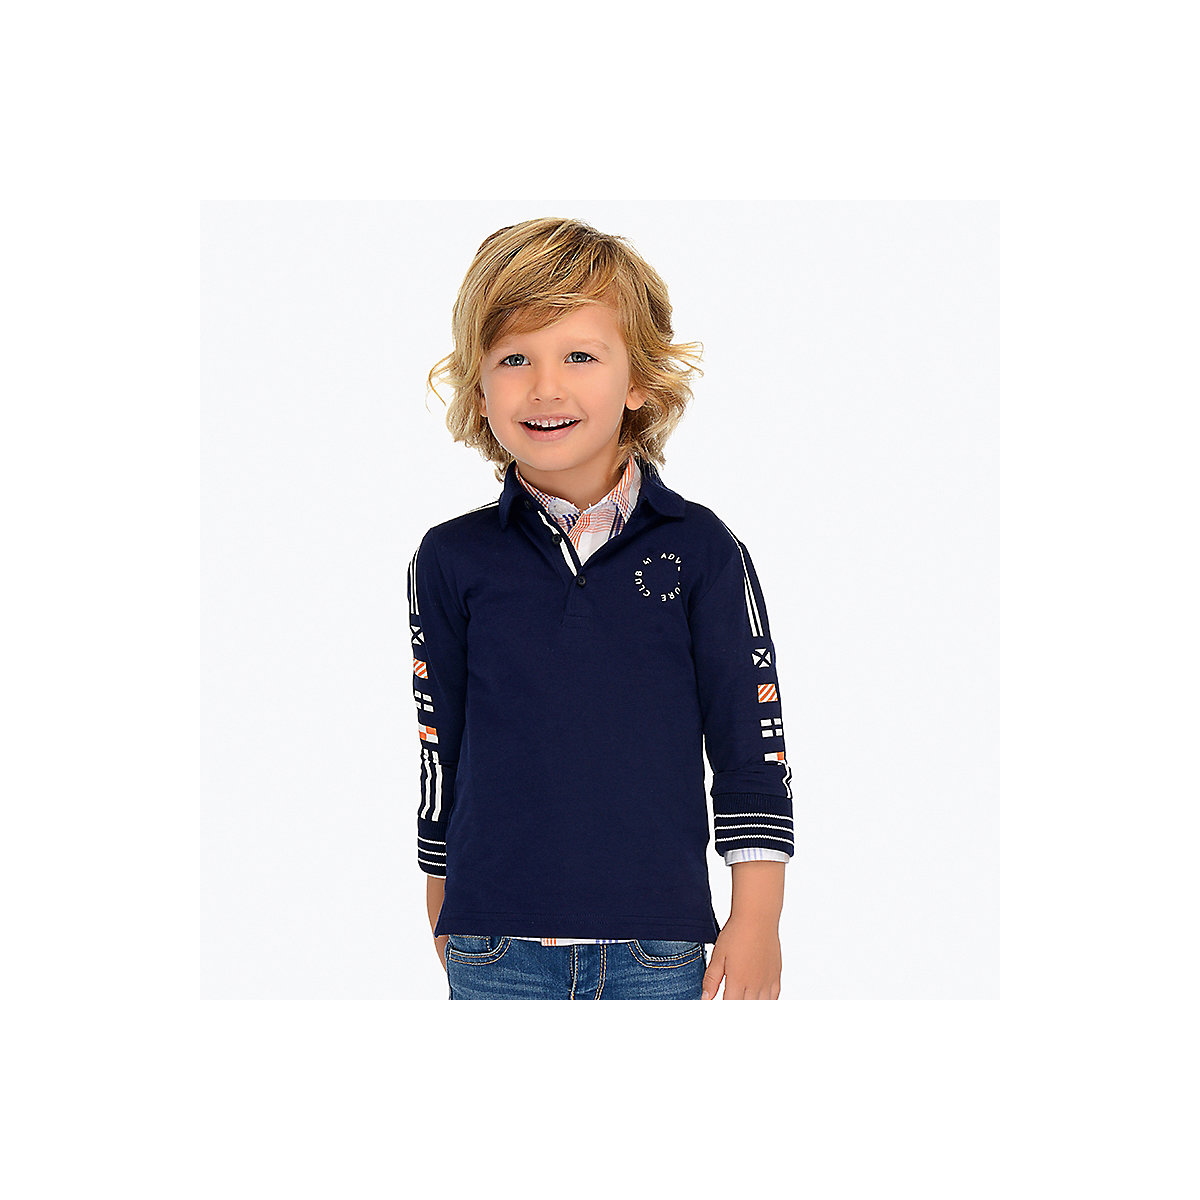 MAYORAL Polo Shirts 10681469 Children Clothing T-shirt Shirt The Print For Boys